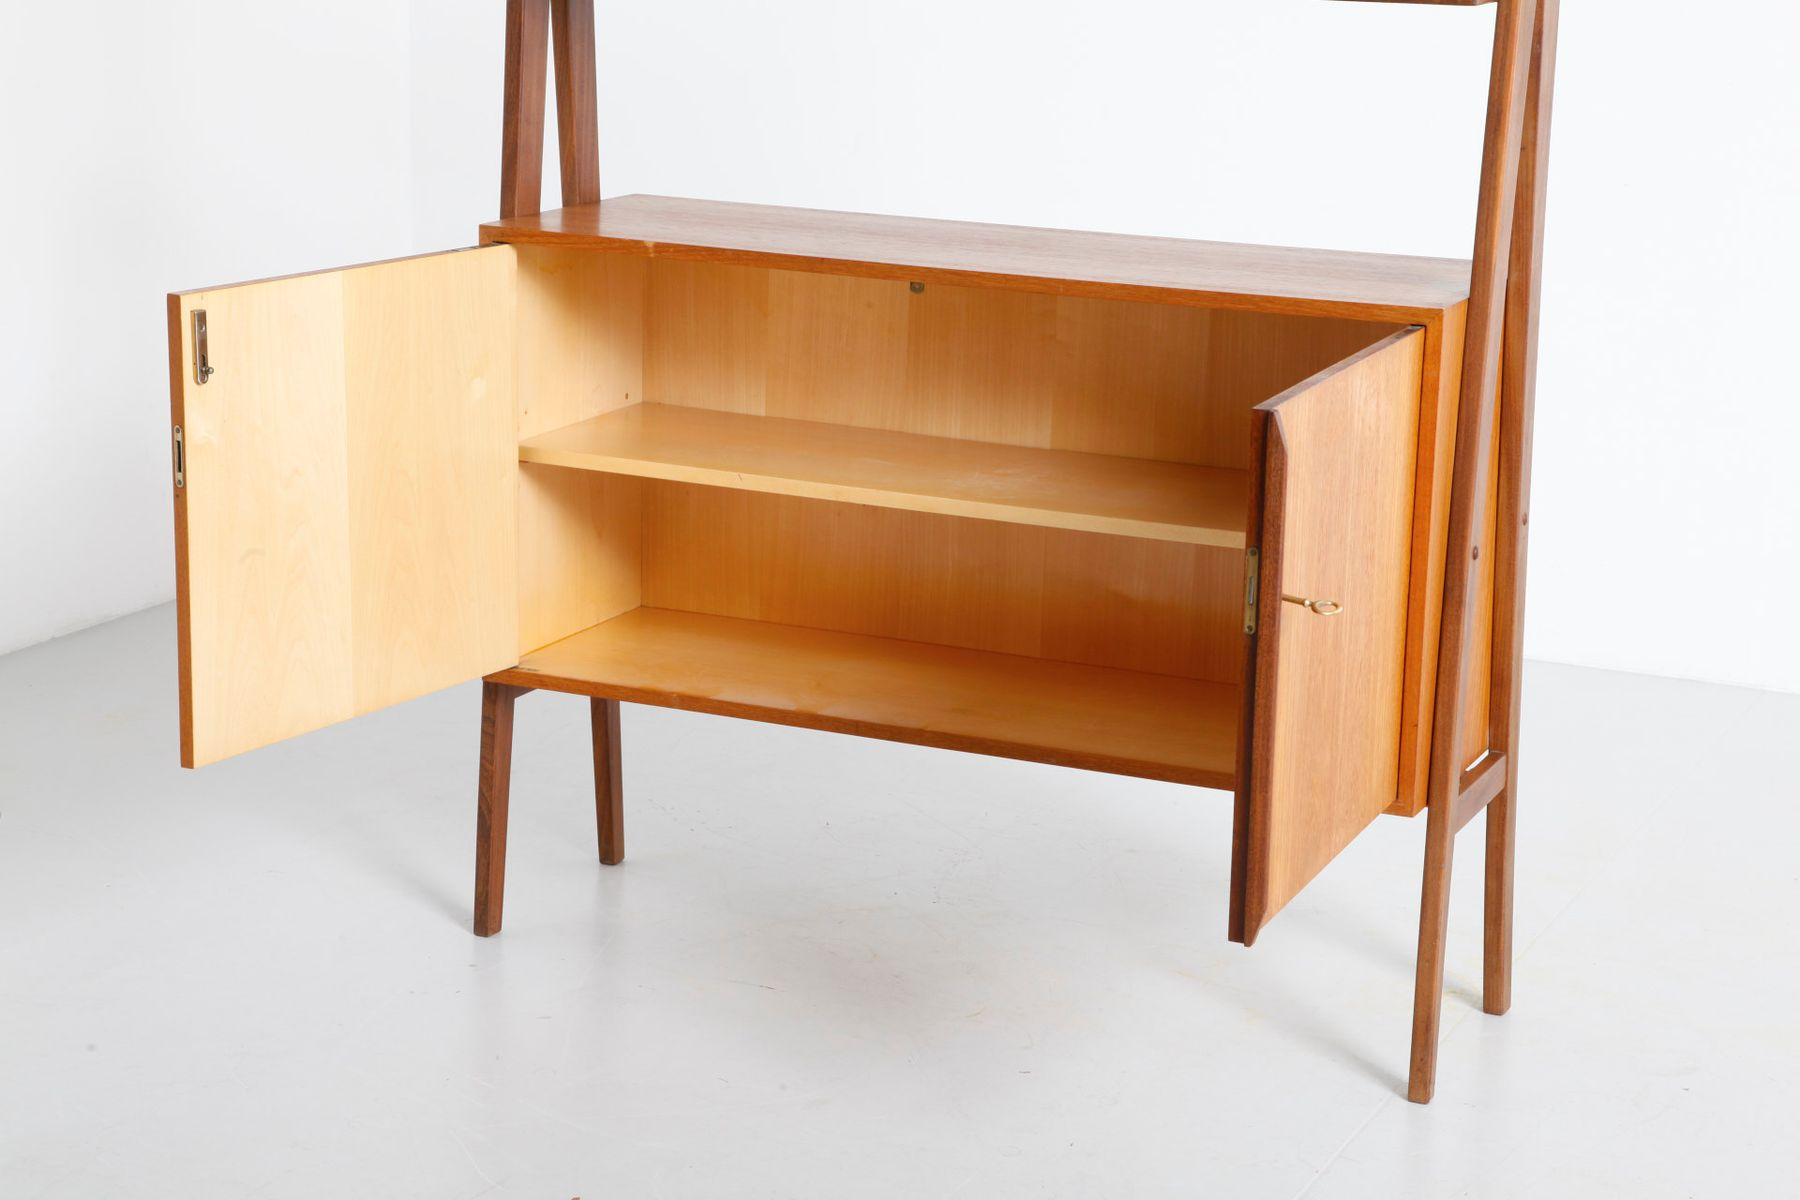 mid century free standing teak shelf from wk m bel for. Black Bedroom Furniture Sets. Home Design Ideas